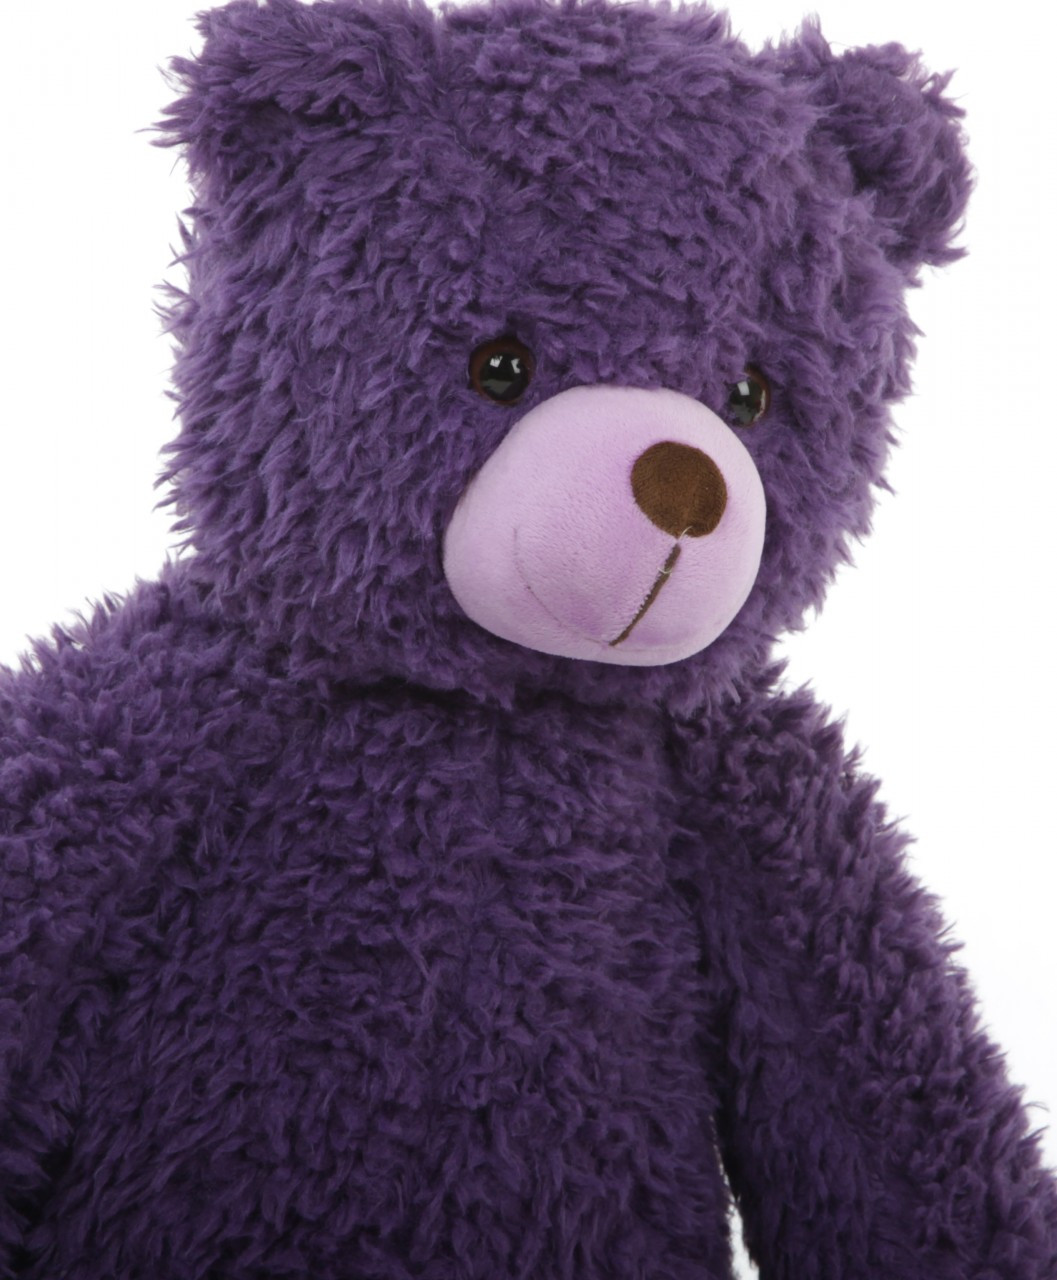 Violet Woolly Tubs Purple Plush Teddy Bear 32 inches